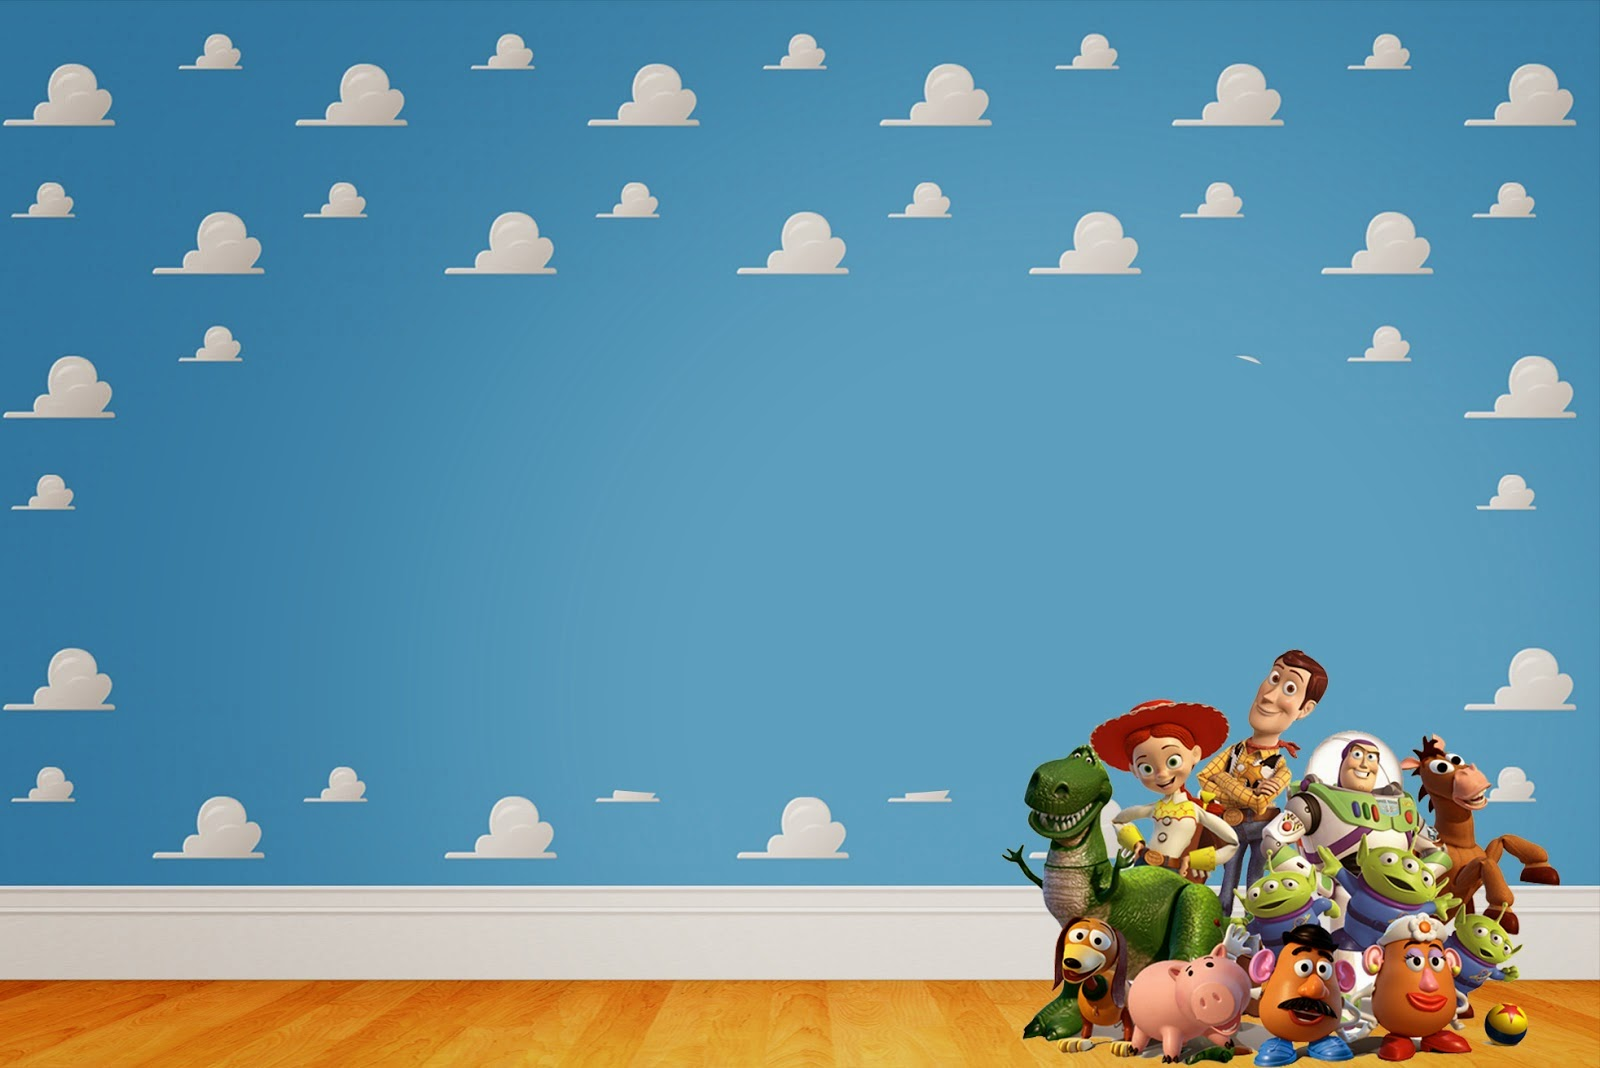 Ideal Toy Story Free Printable Invitations Labels or Cards